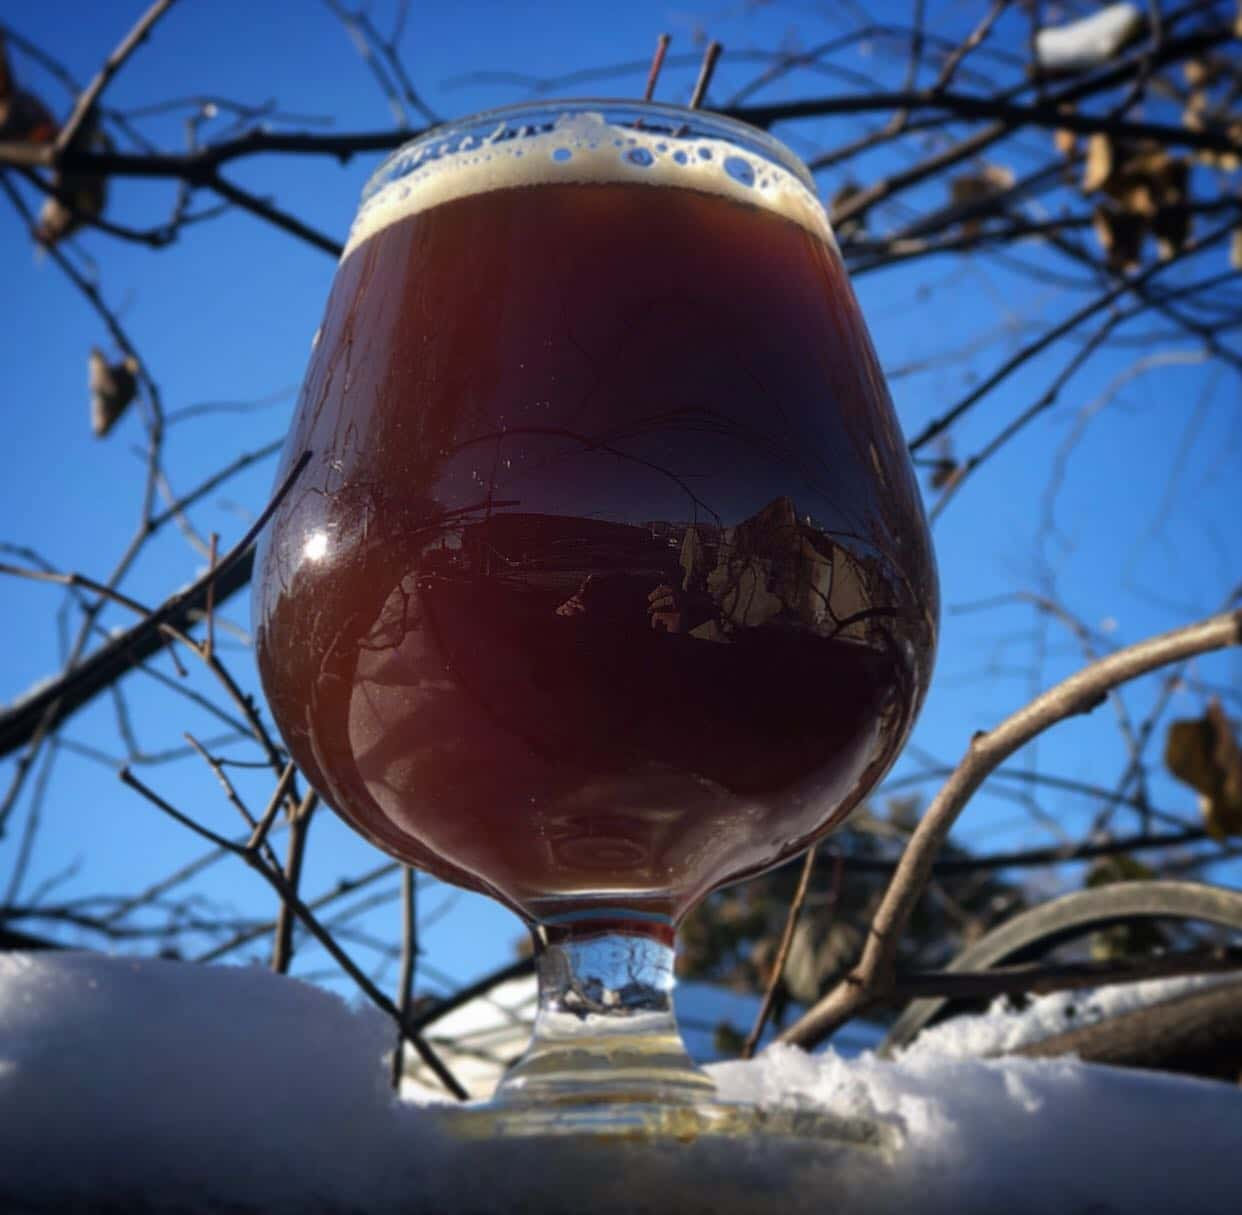 Snifter of Cheval Deux French farmhouse ale from Horse Thief Hollow sitting in the snow against a backdrop of blue sky